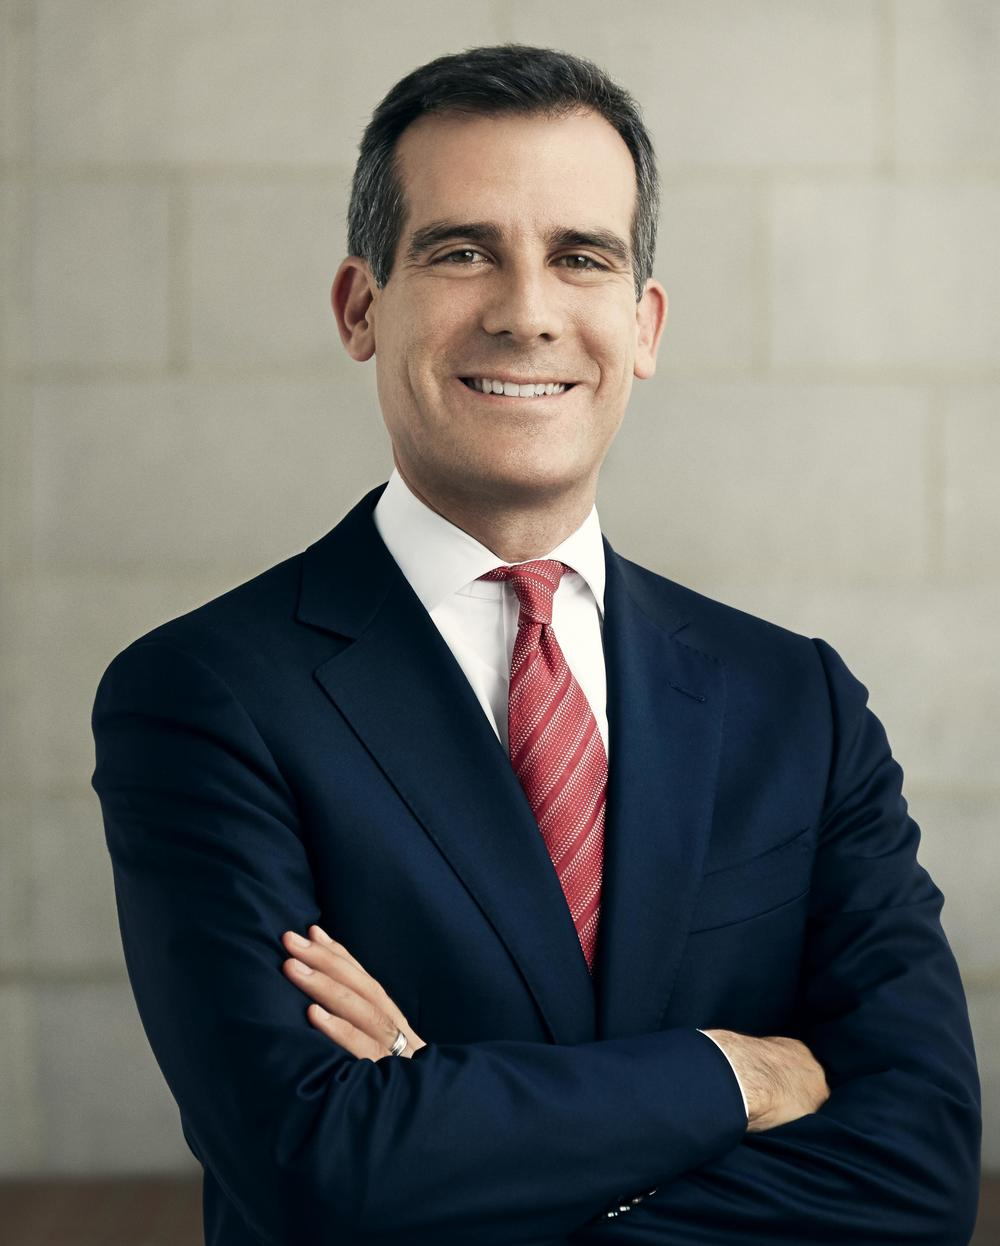 Eric_Garcetti_in_Suit_and_Tie.jpg